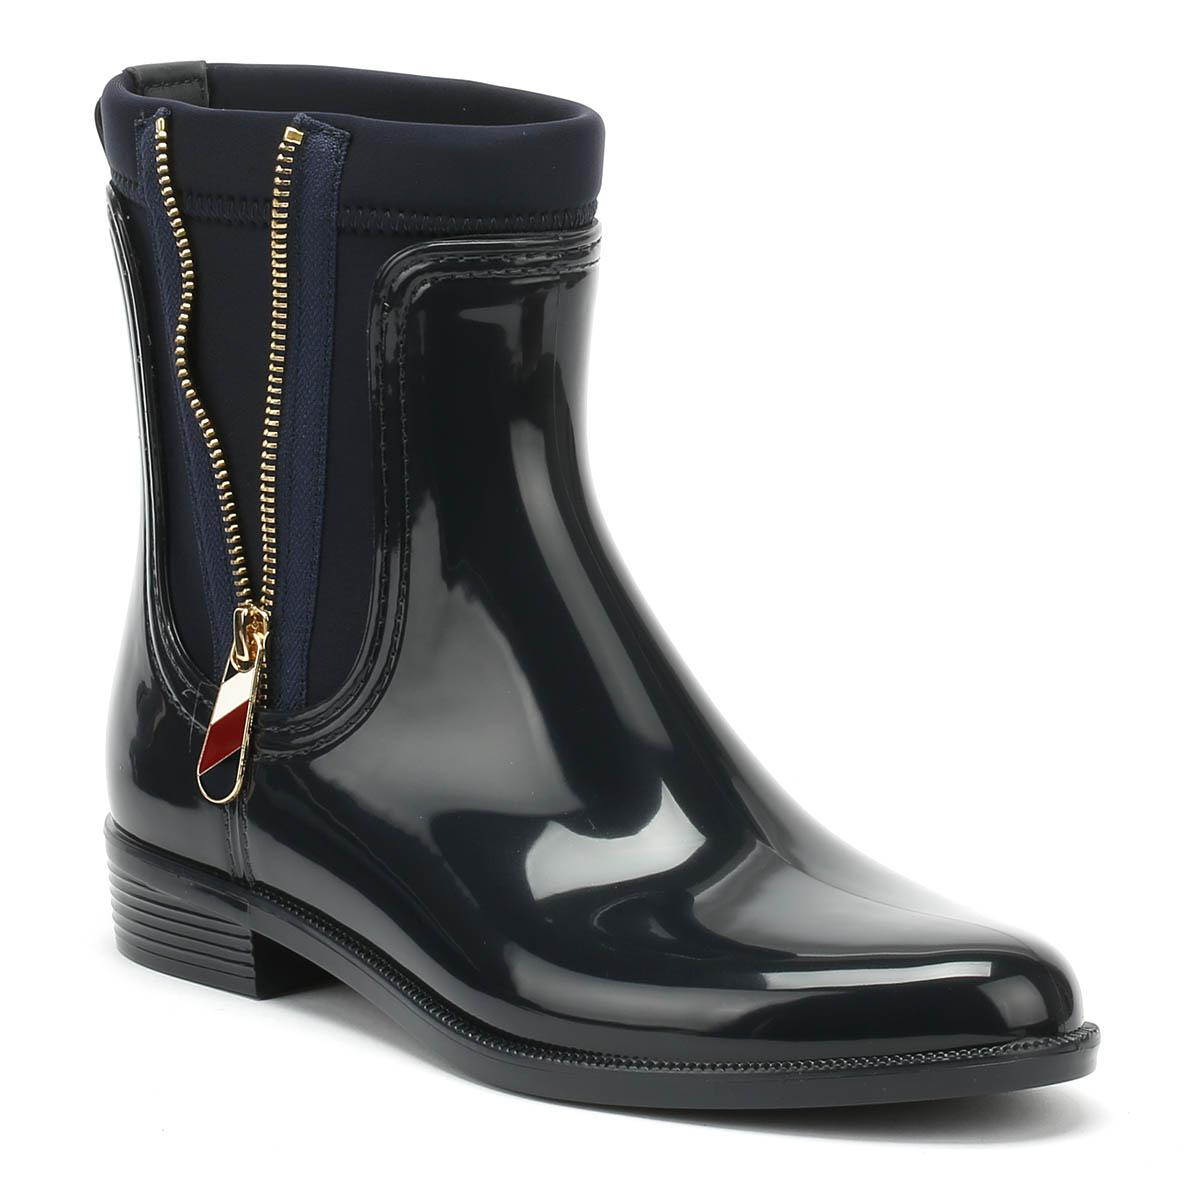 41362fe0680f4e Lyst - Tommy Hilfiger Womens Midnight Navy Material Mix Rain Boots ...